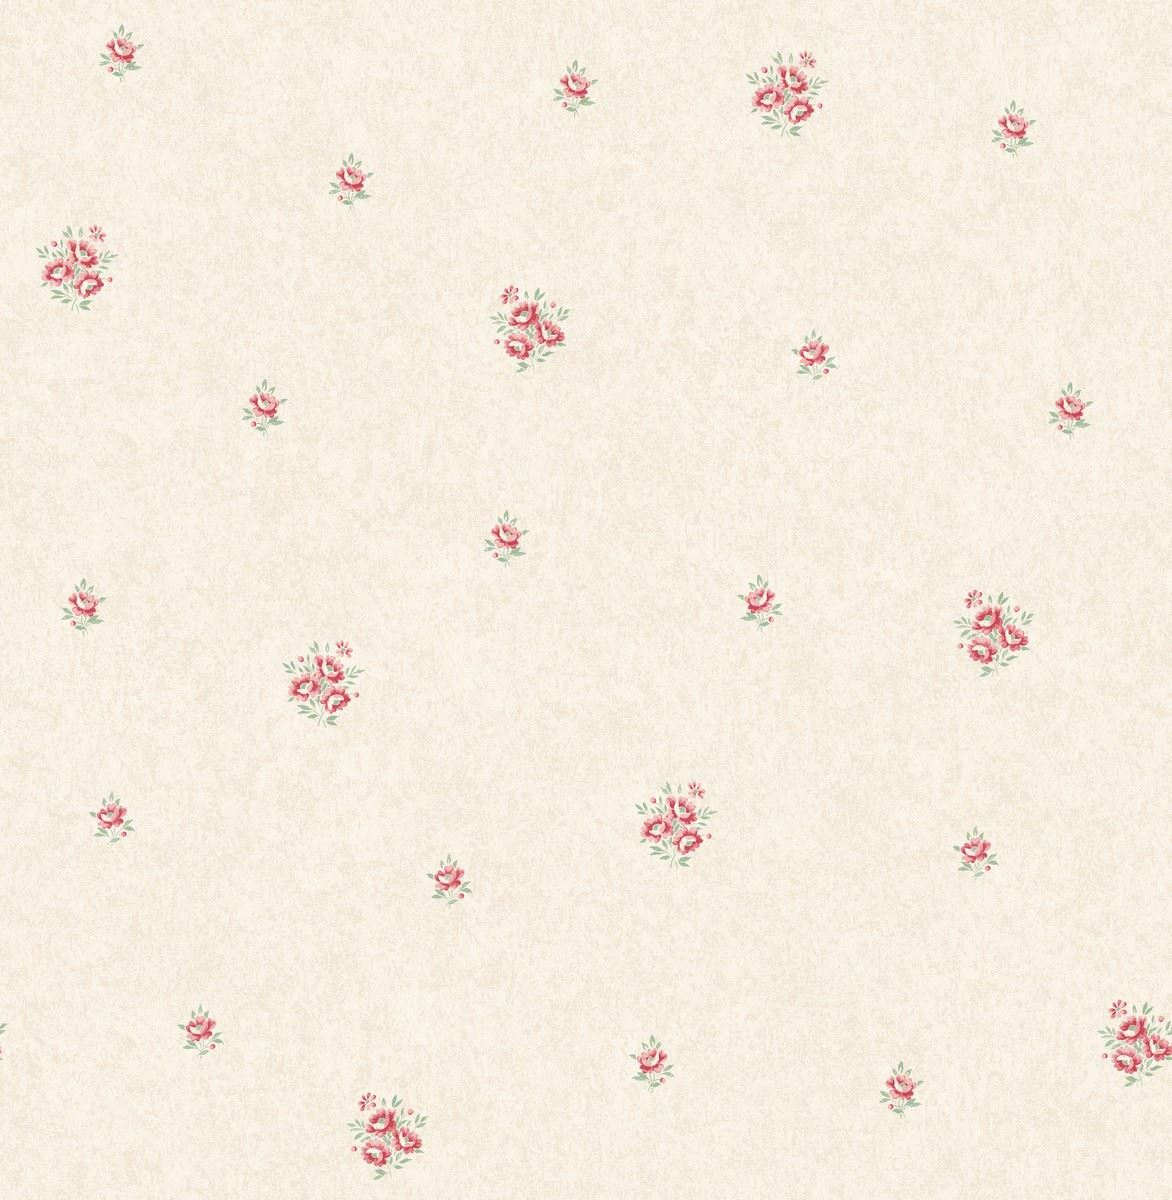 Flower Floral Wallpaper Pink Metallic Mica Shimmer Country Holden